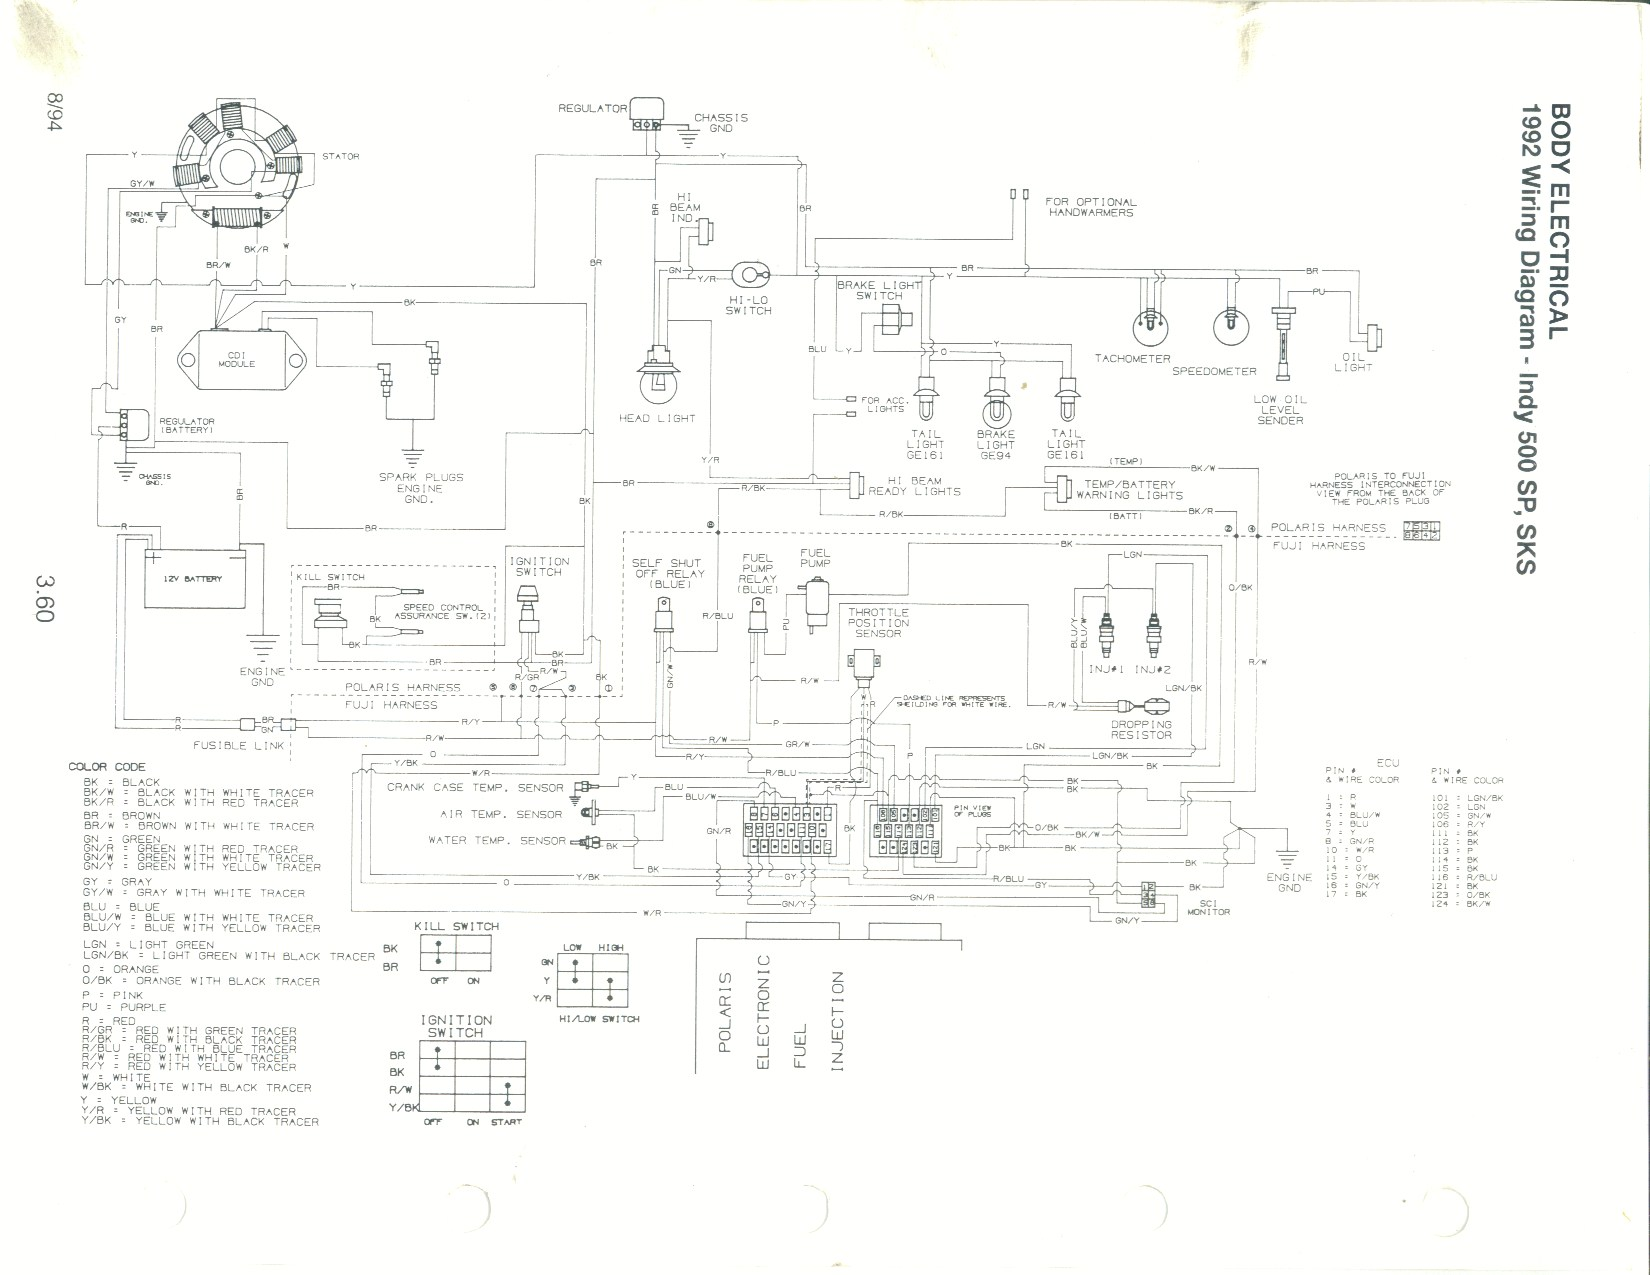 [DIAGRAM] Polaris Indy 440 Wiring Diagram FULL Version HD